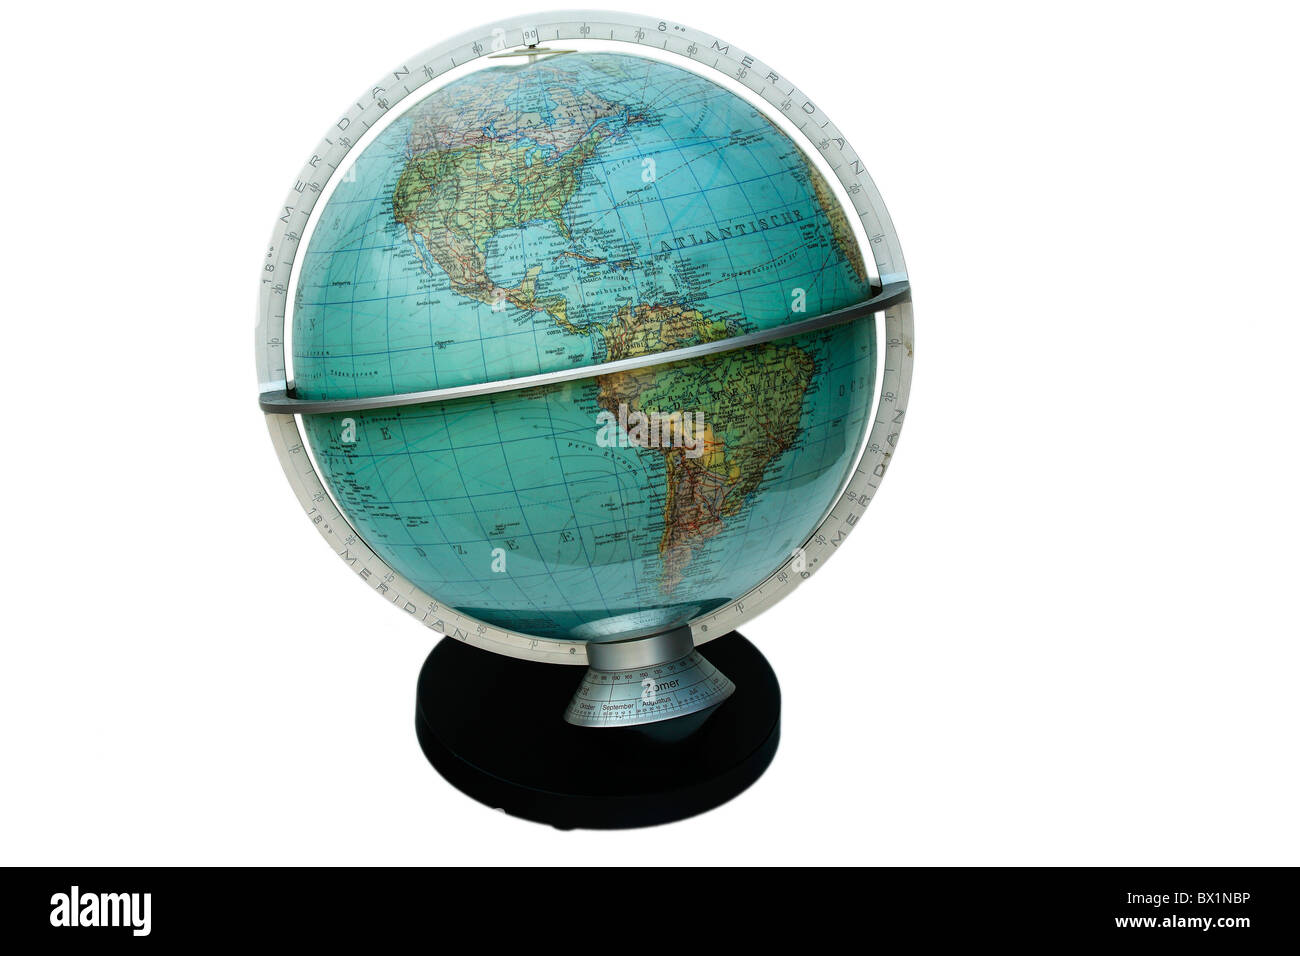 Globe Globe Map Of World Geography Round Countries Coordinates - Round world map image